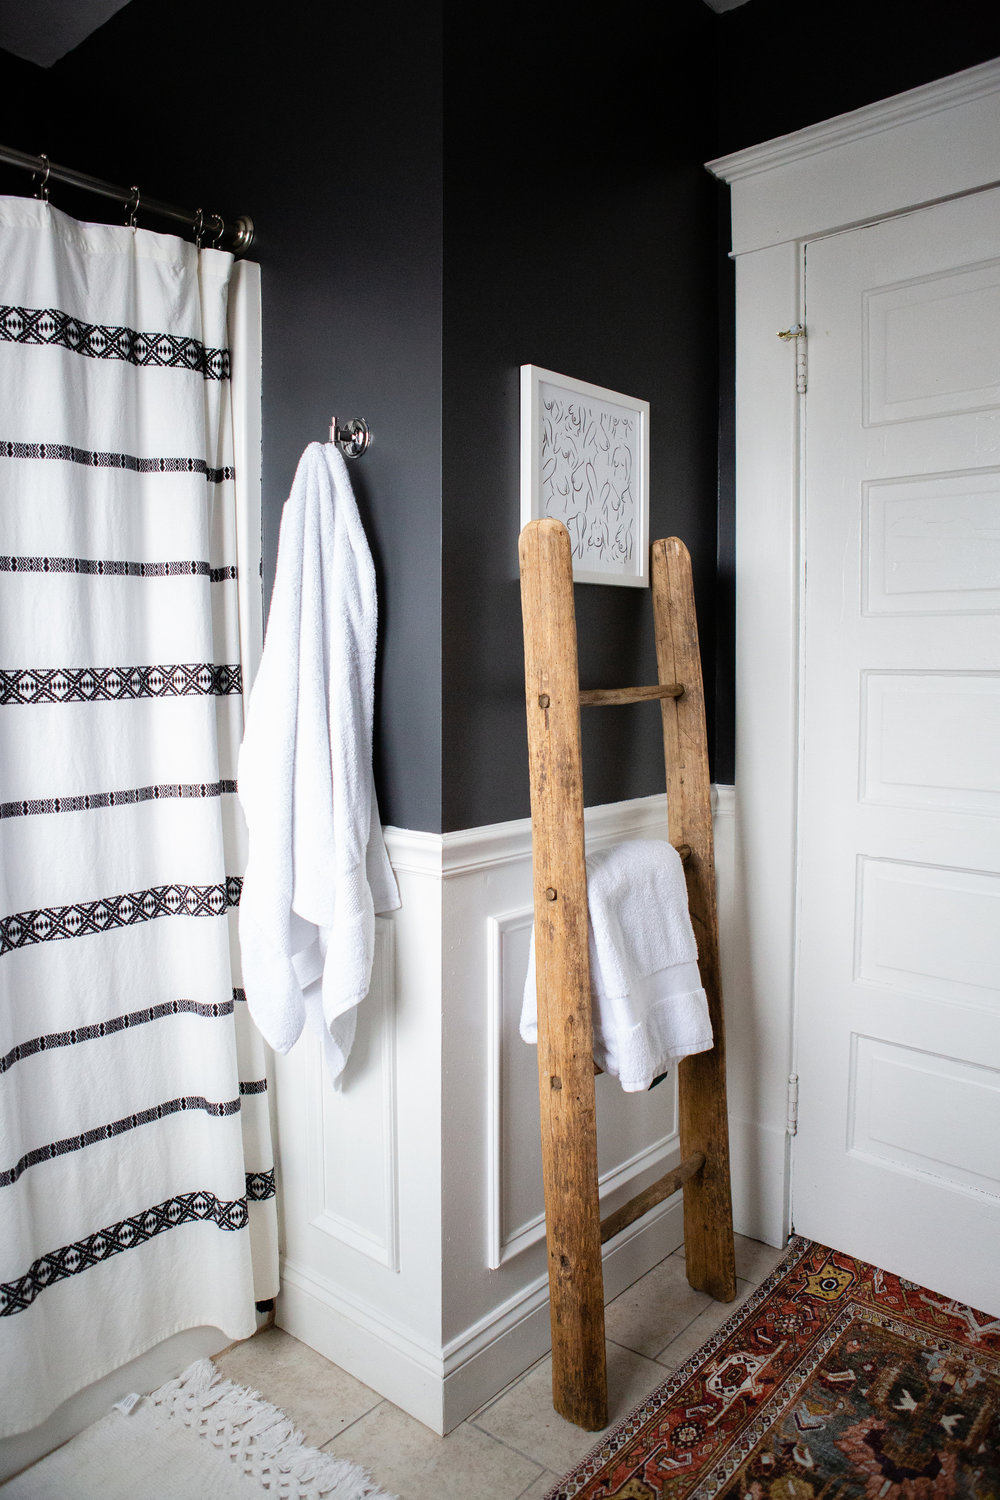 Charcoal black bathroom | Freckle & Fair